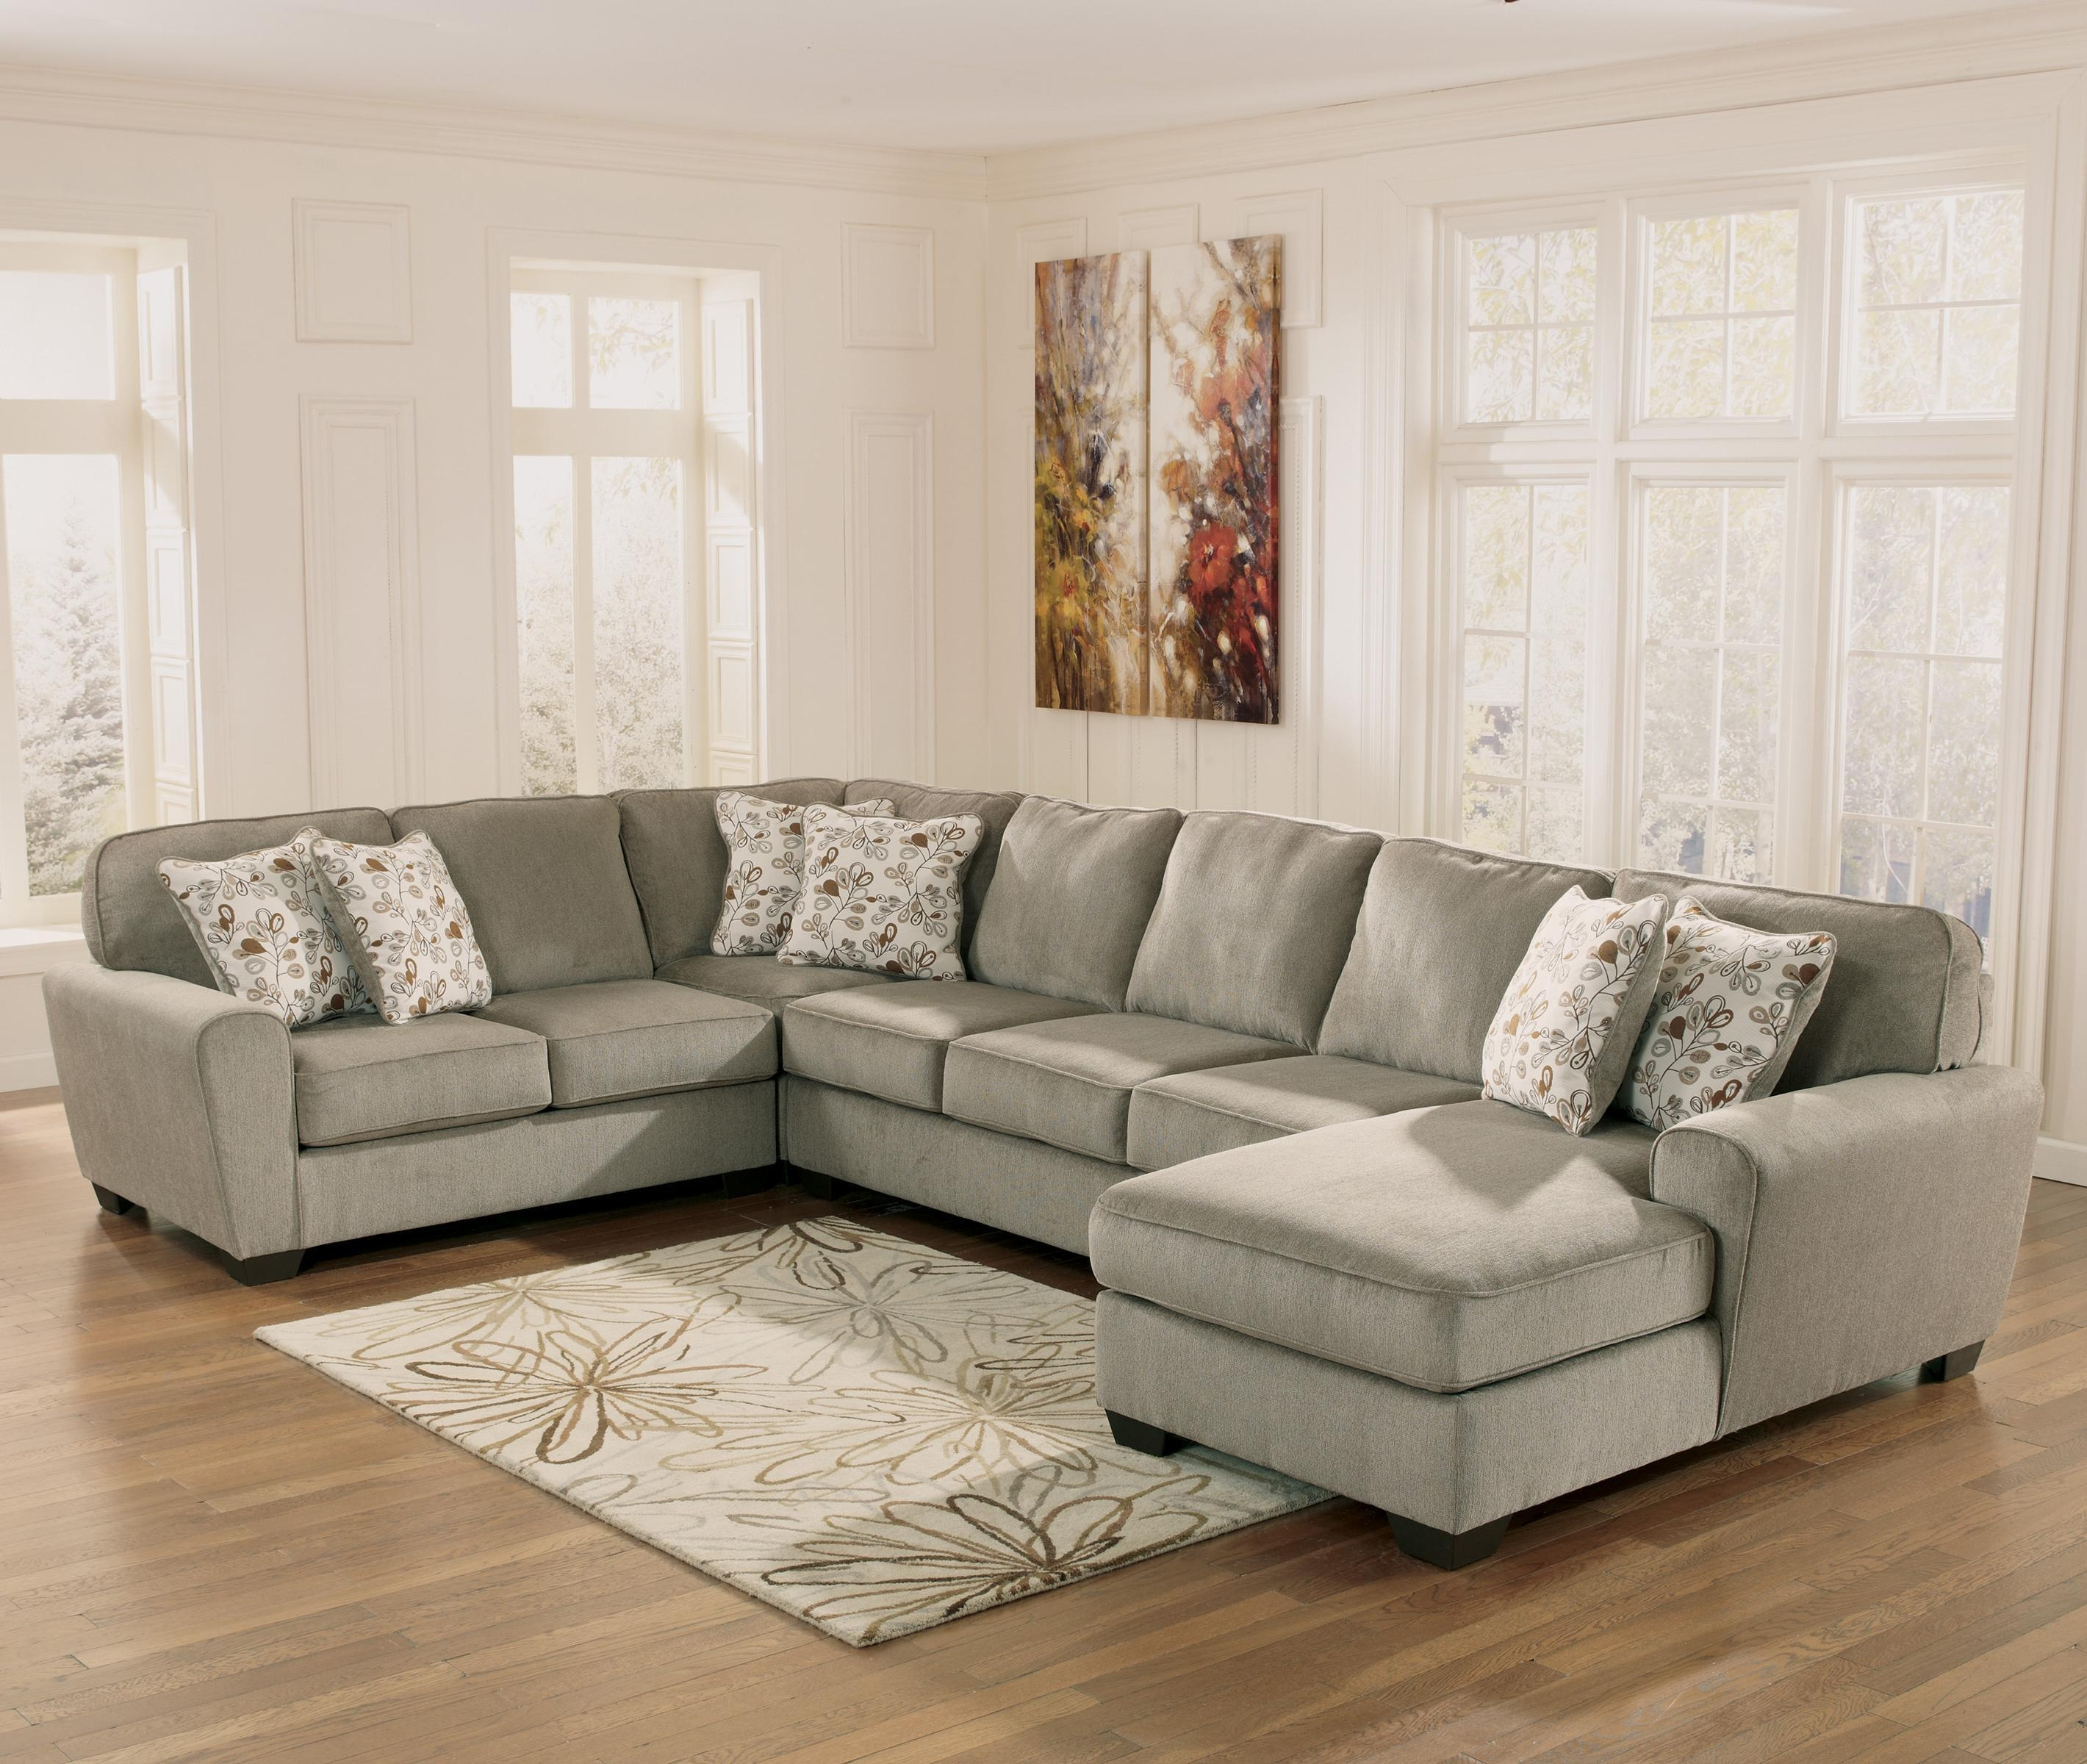 Ashley Furniture Patola Park – Patina 4 Piece Sectional With Right Inside Ashley Furniture Corduroy Sectional Sofas (View 11 of 20)